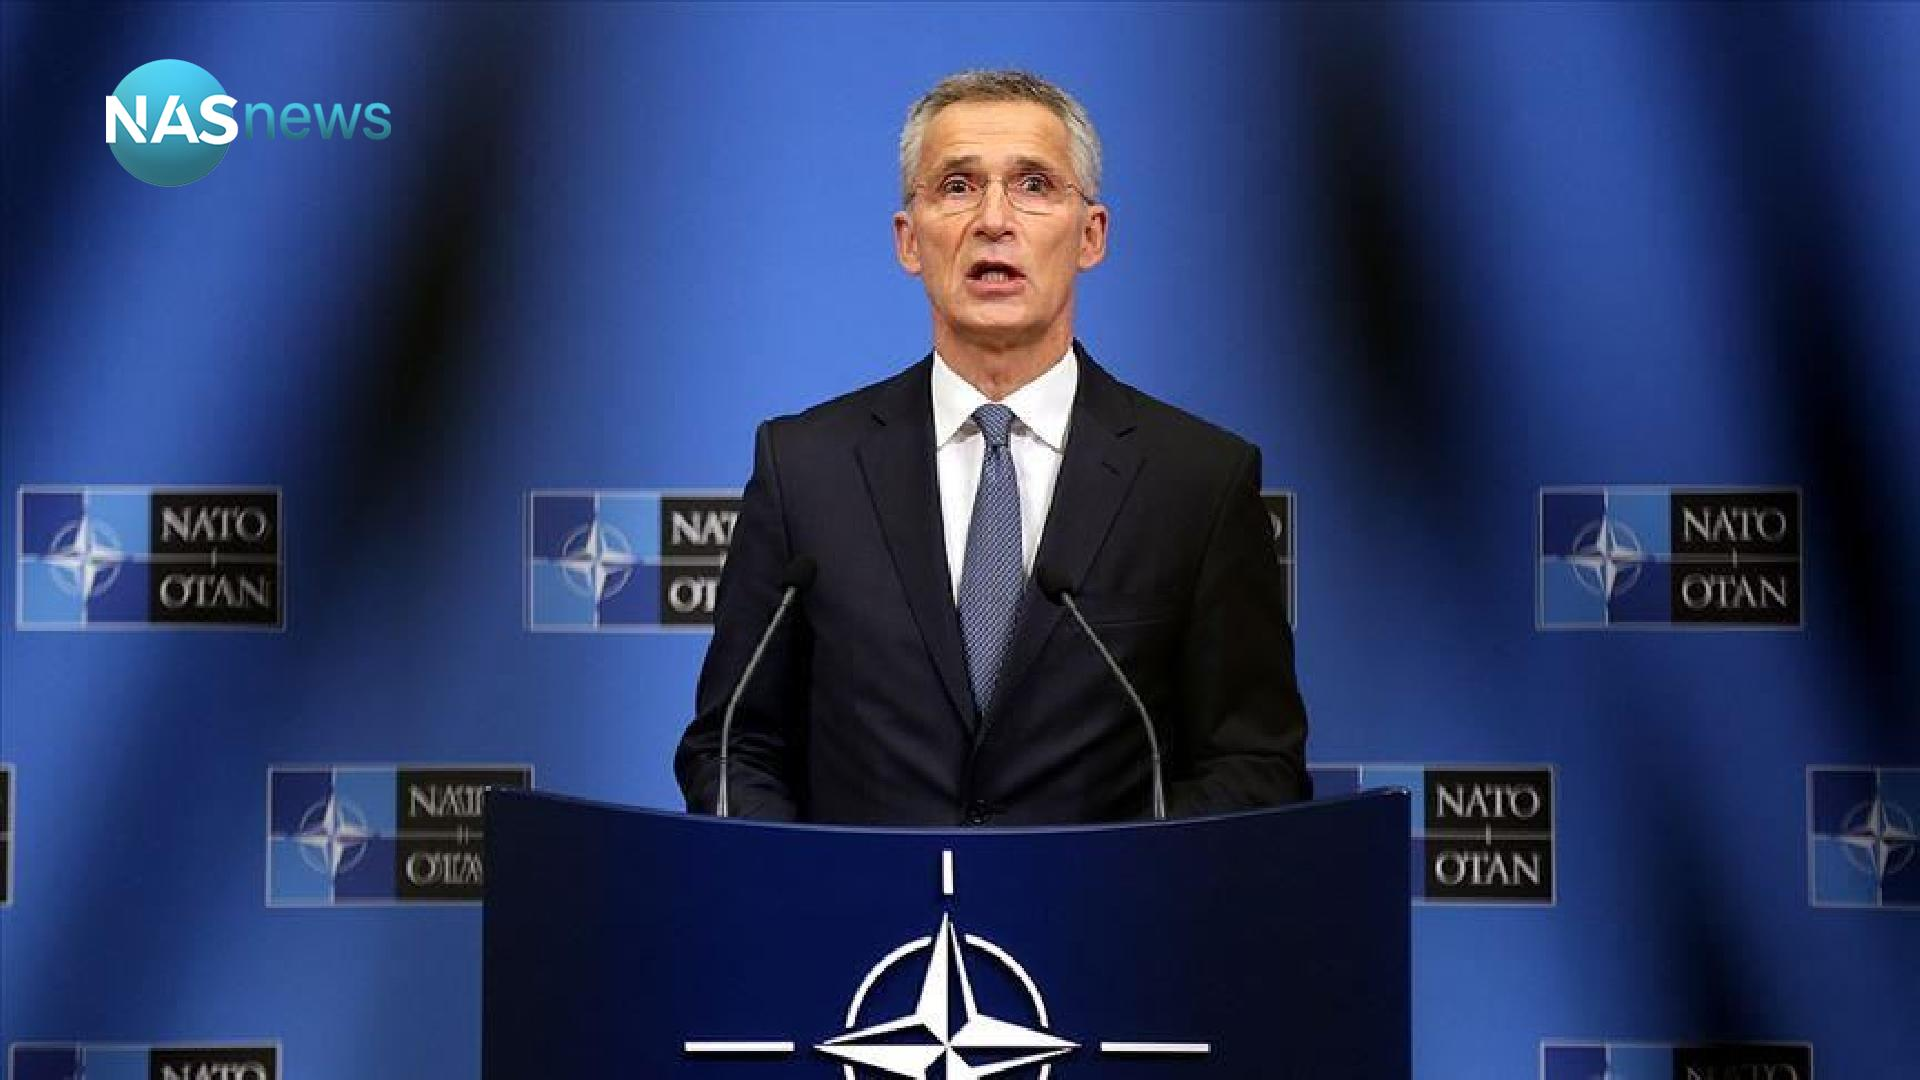 NATO: ISIS is still active in Iraq and we decided to expand our missions Dd04a1722-53115-202102180701